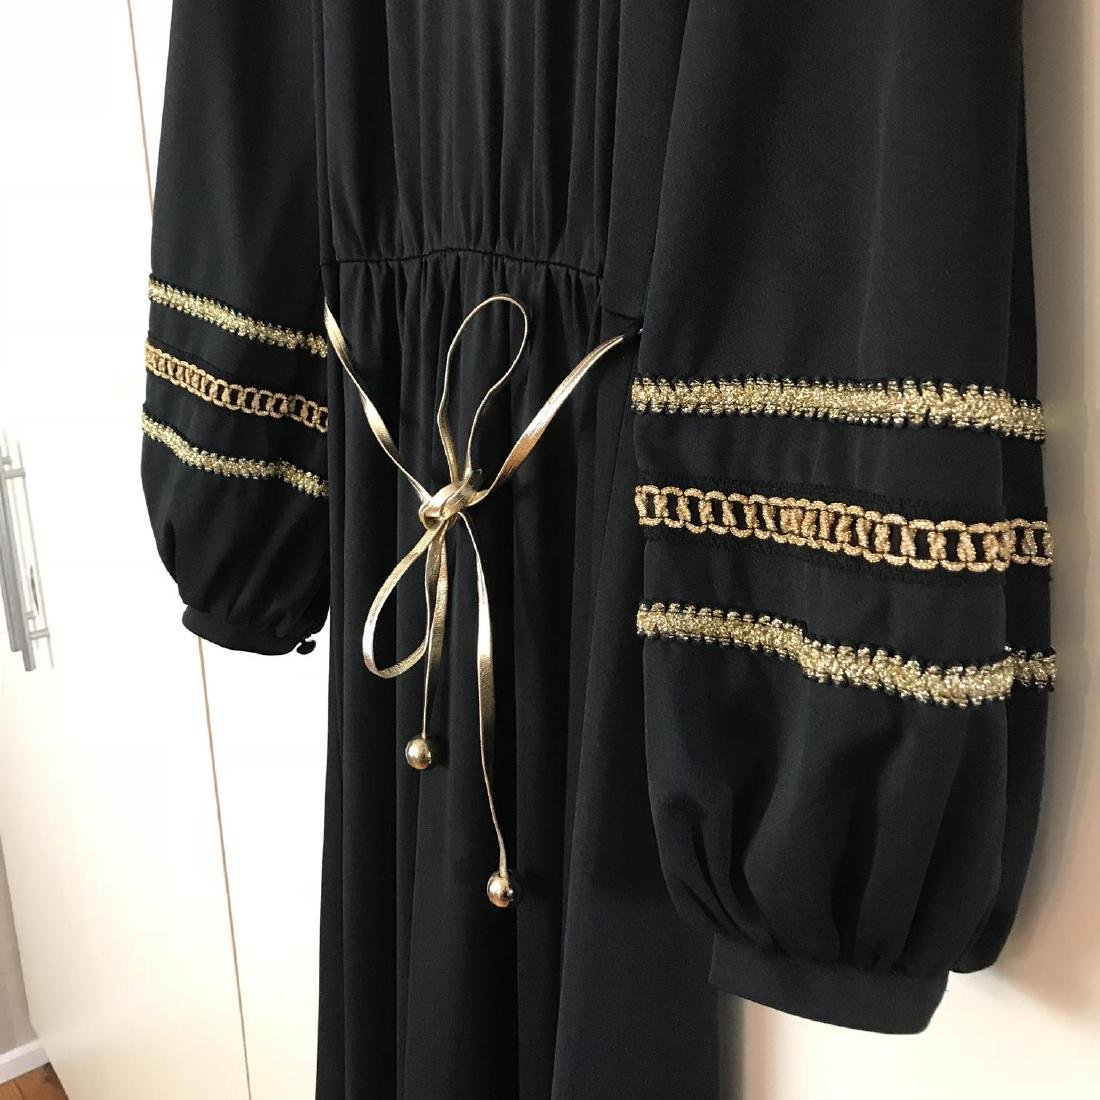 Betty Barclay Black / Gold Vintage Designer Dress - 6